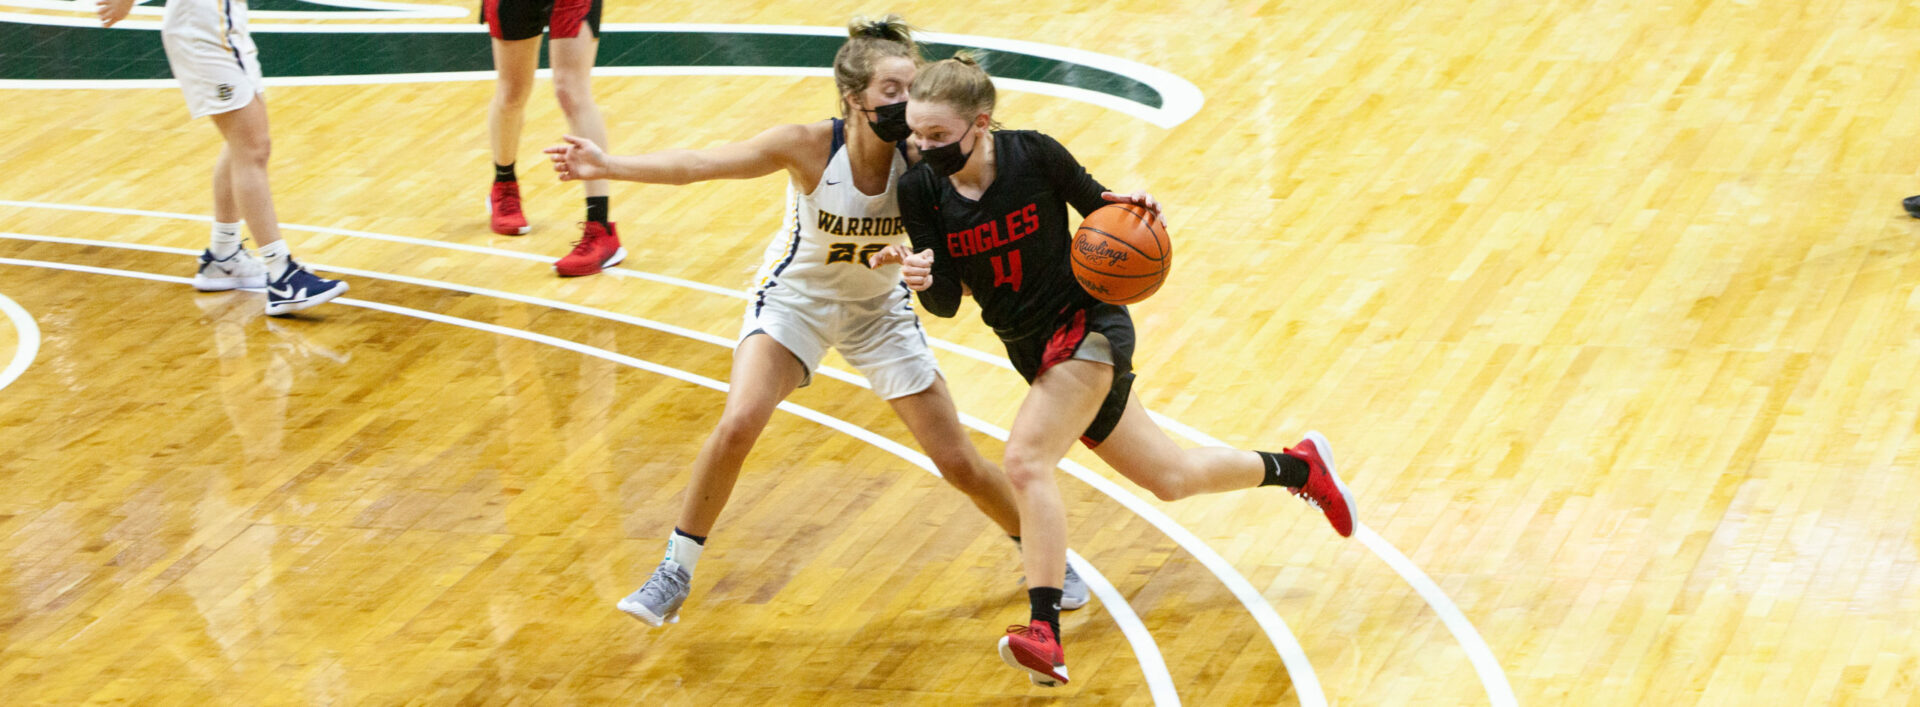 Kent City girls fight back hard in the fourth quarter, come up just two points short in their bid for a state championship